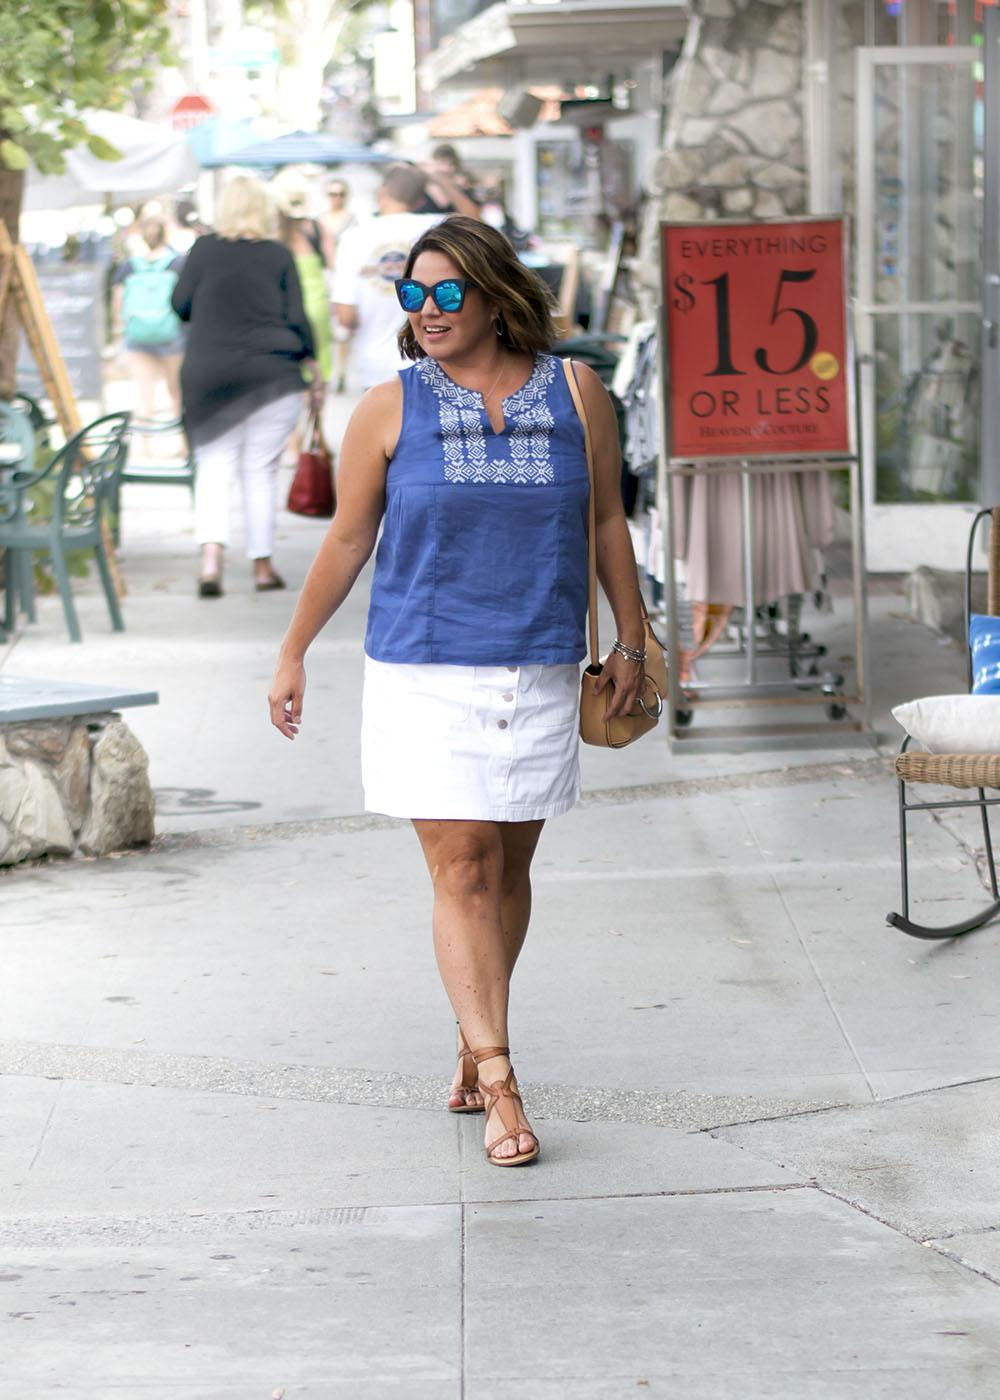 Casual Outfit Los Angeles Fashion Street Style Blogger Personal Stylist Old Navy Blue Embroidered Sleeveless Top 0504